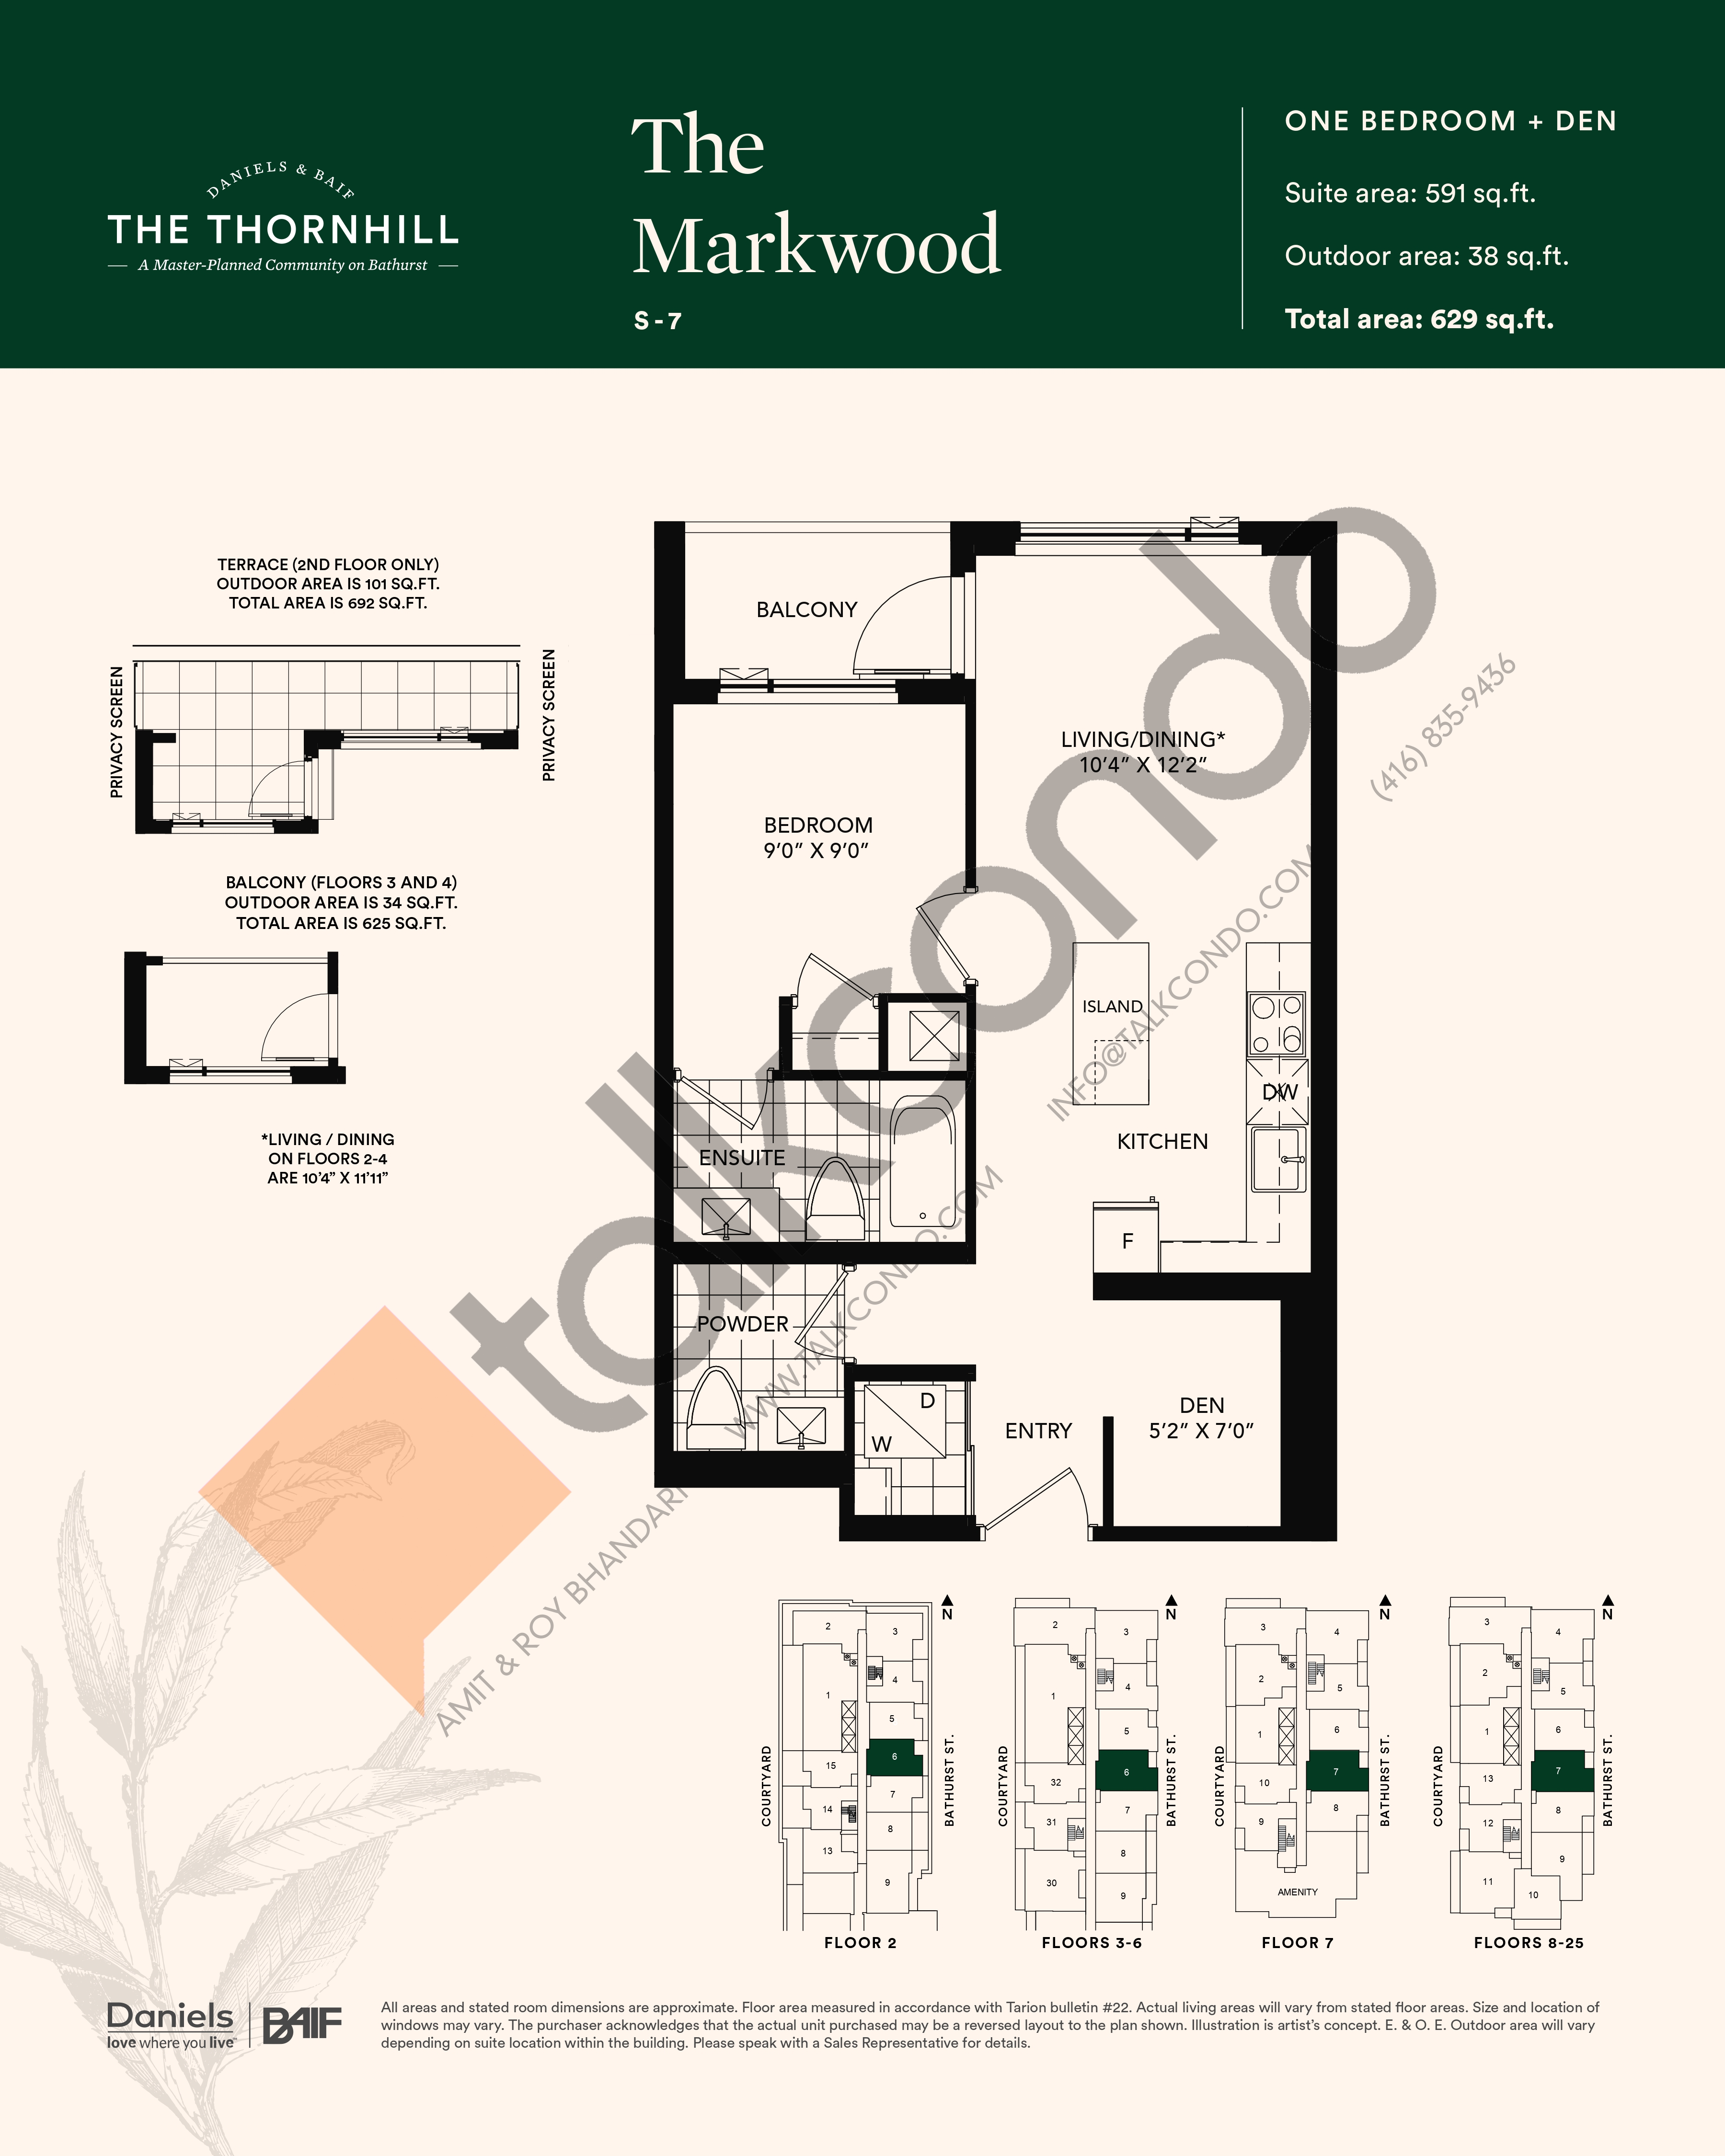 The Markwood Floor Plan at The Thornhill Condos - 591 sq.ft